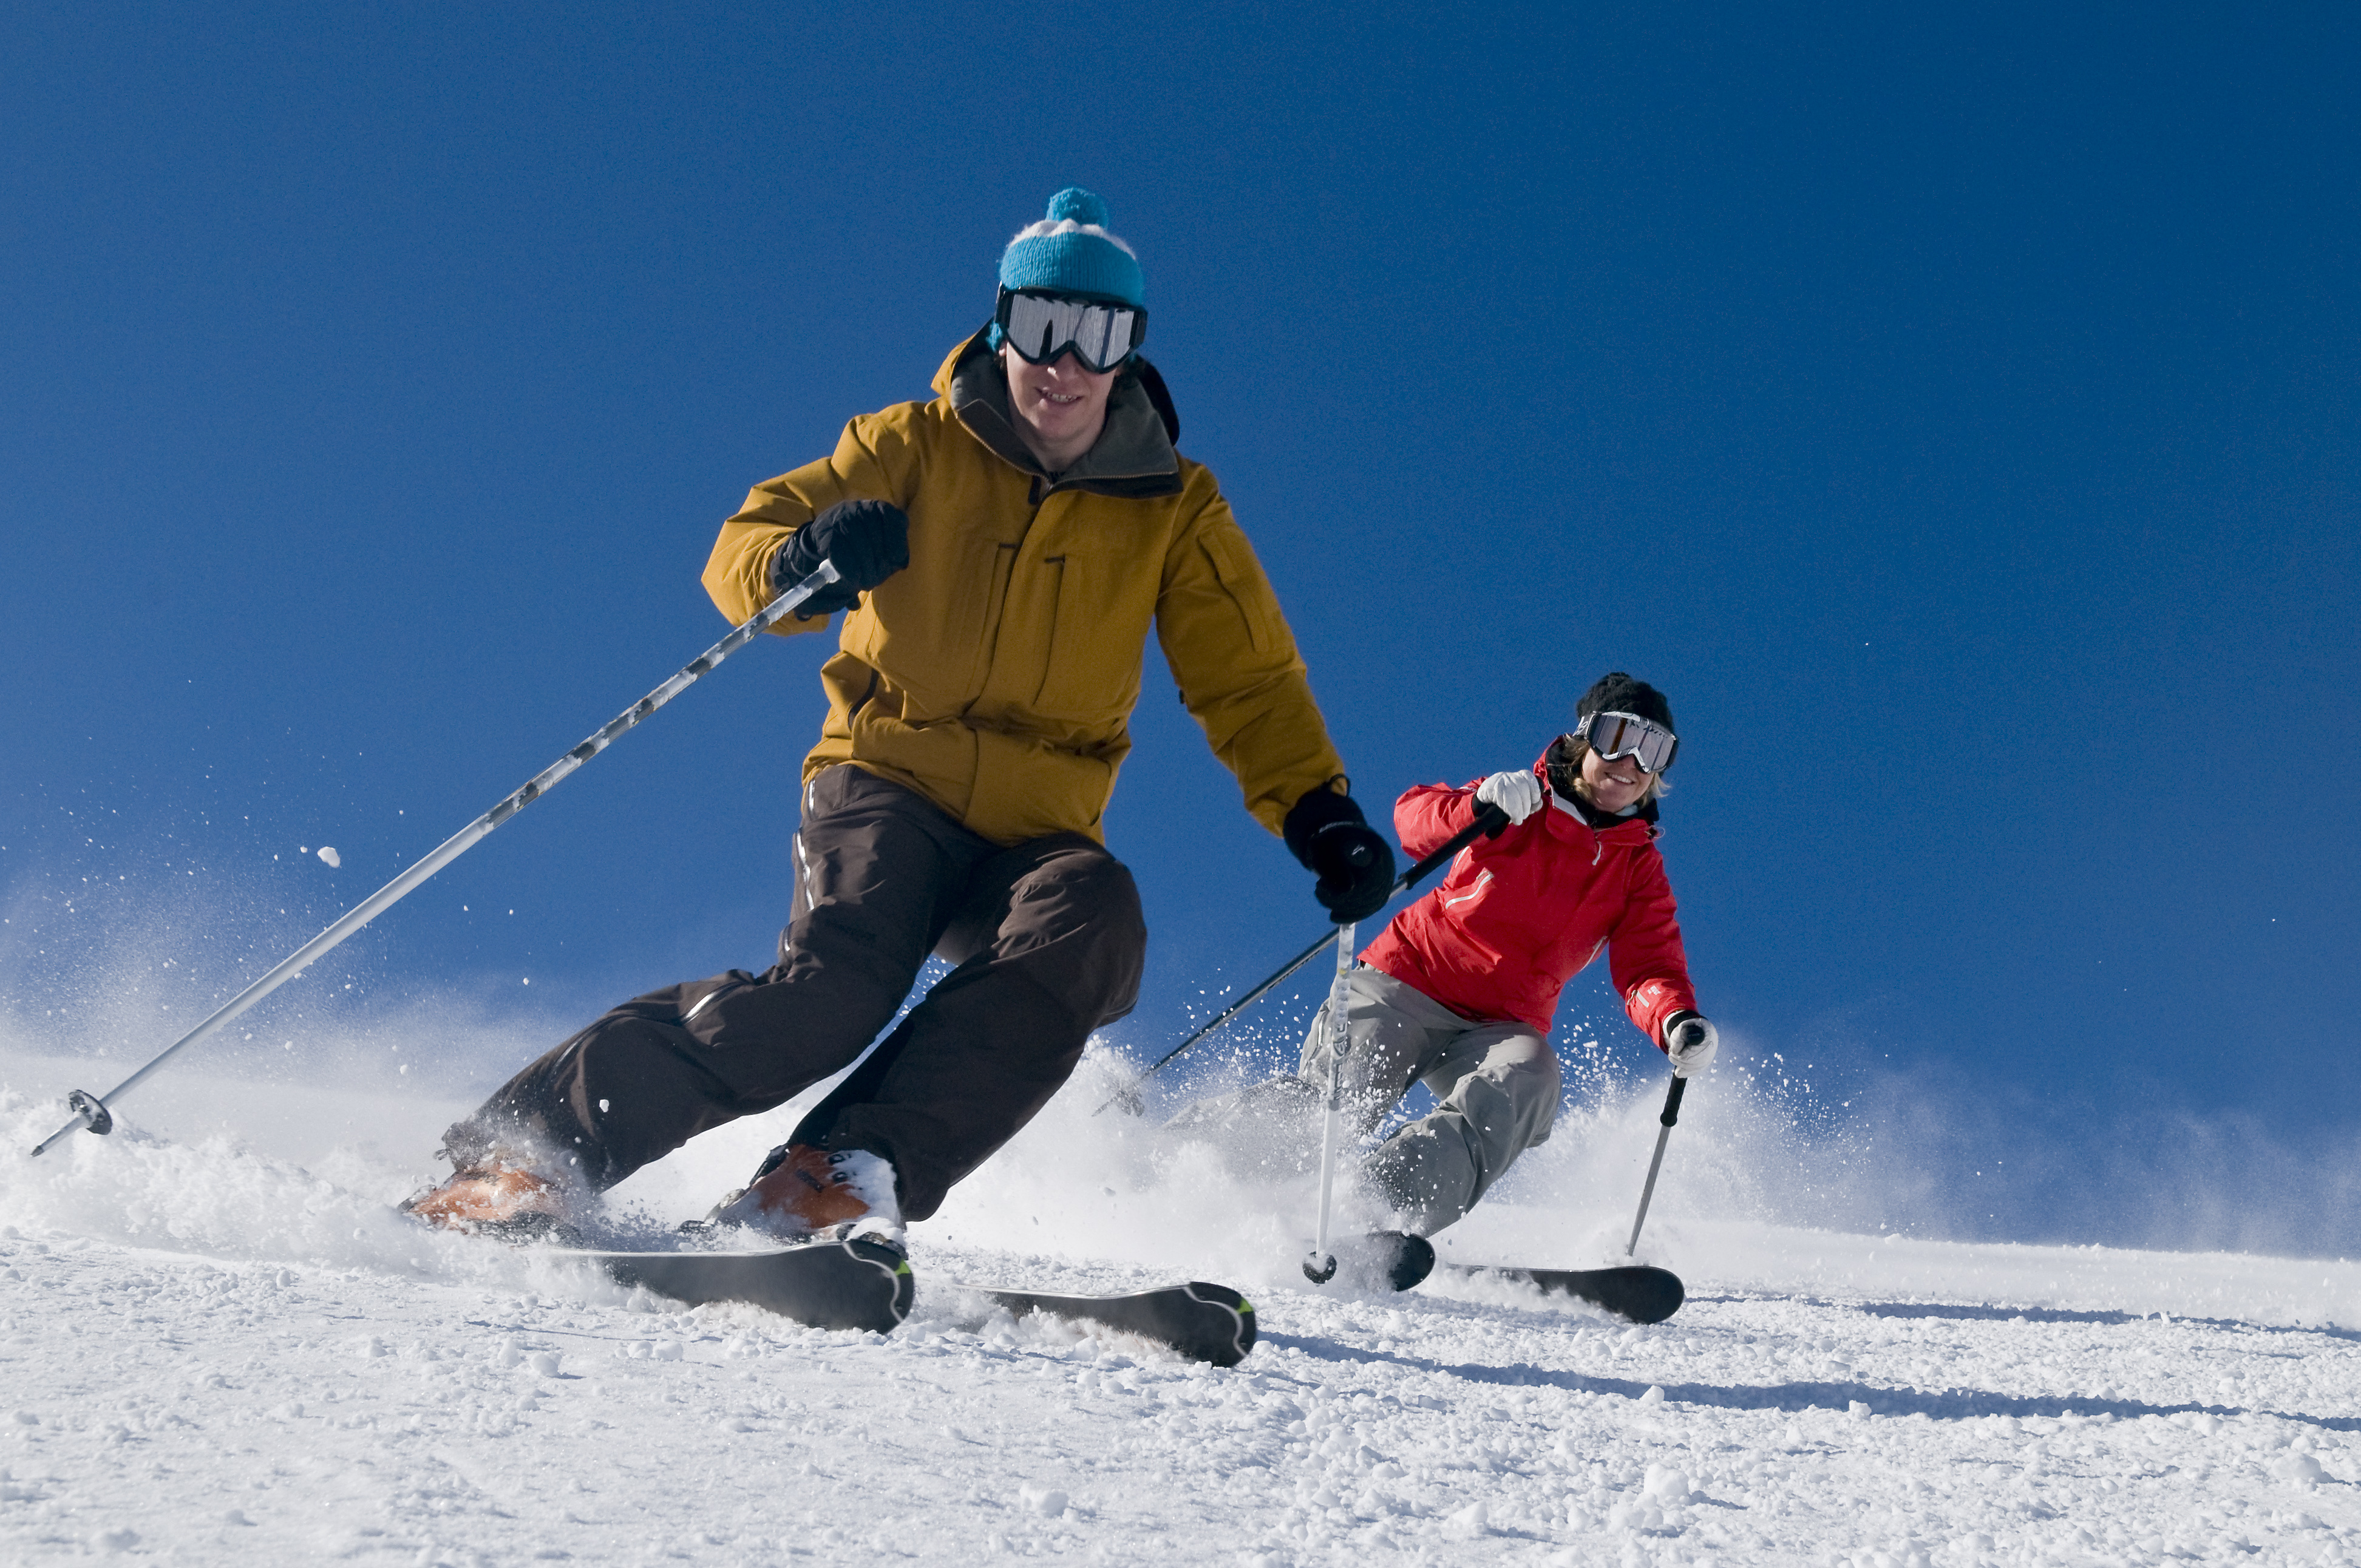 Alpine Skiing France Montagnes Official Website Of The